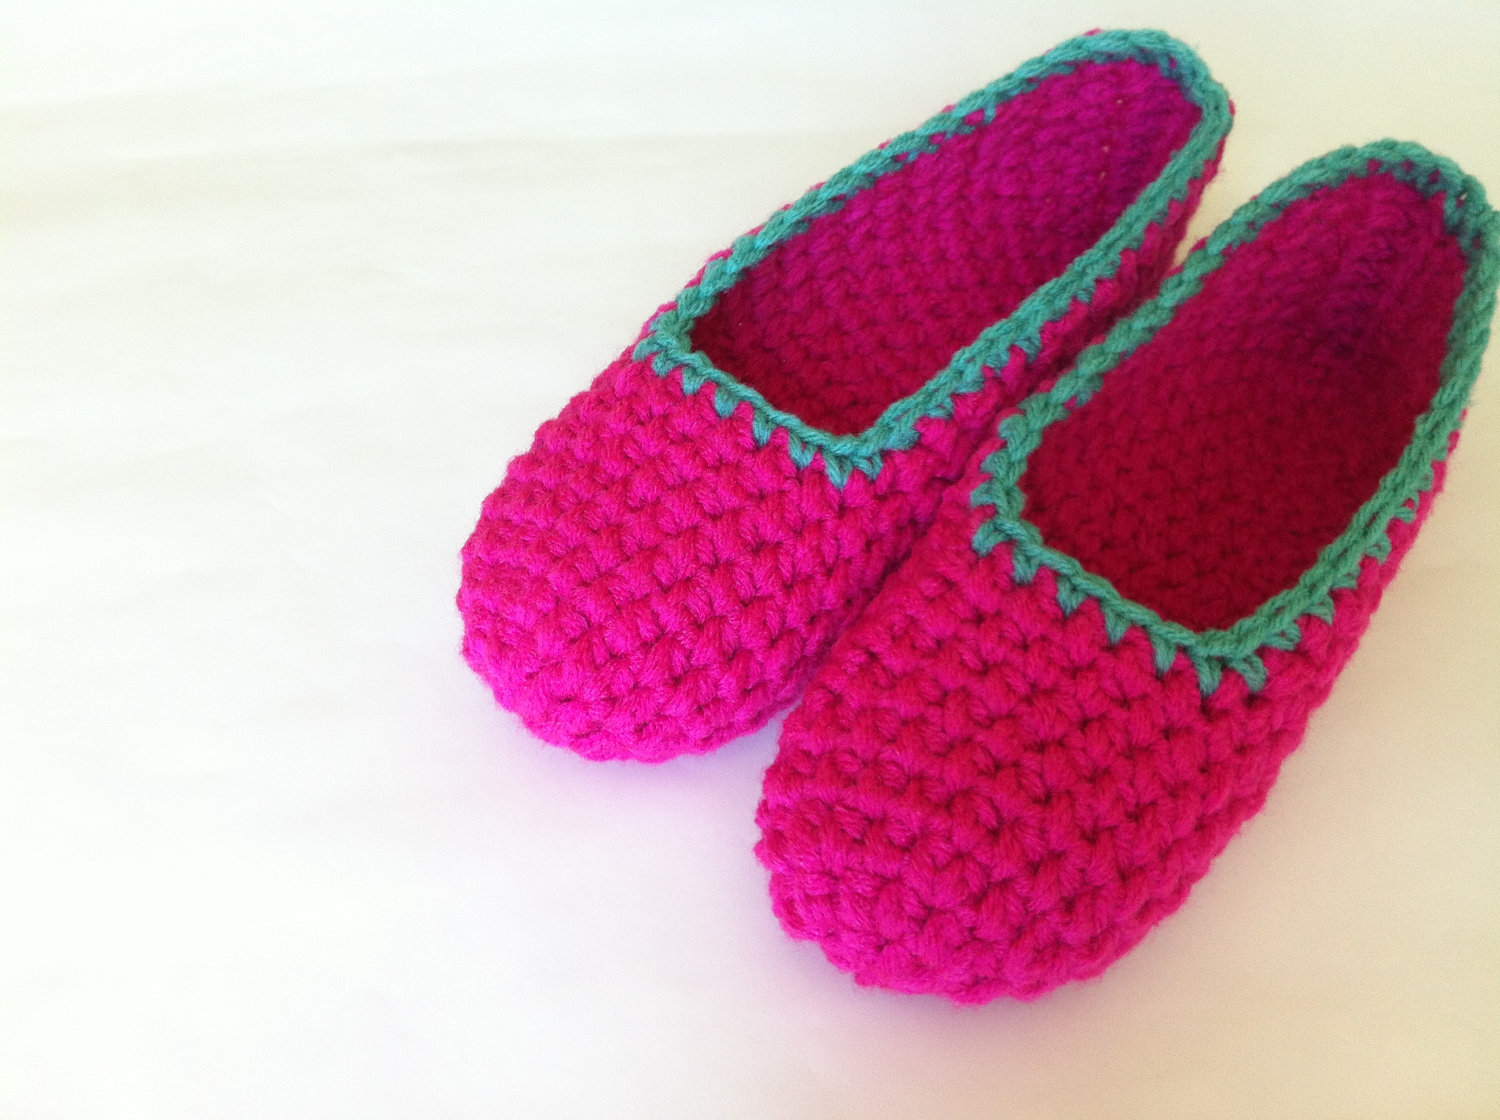 f414ddccebed2 60 Crochet Slippers Patterns - The Funky Stitch